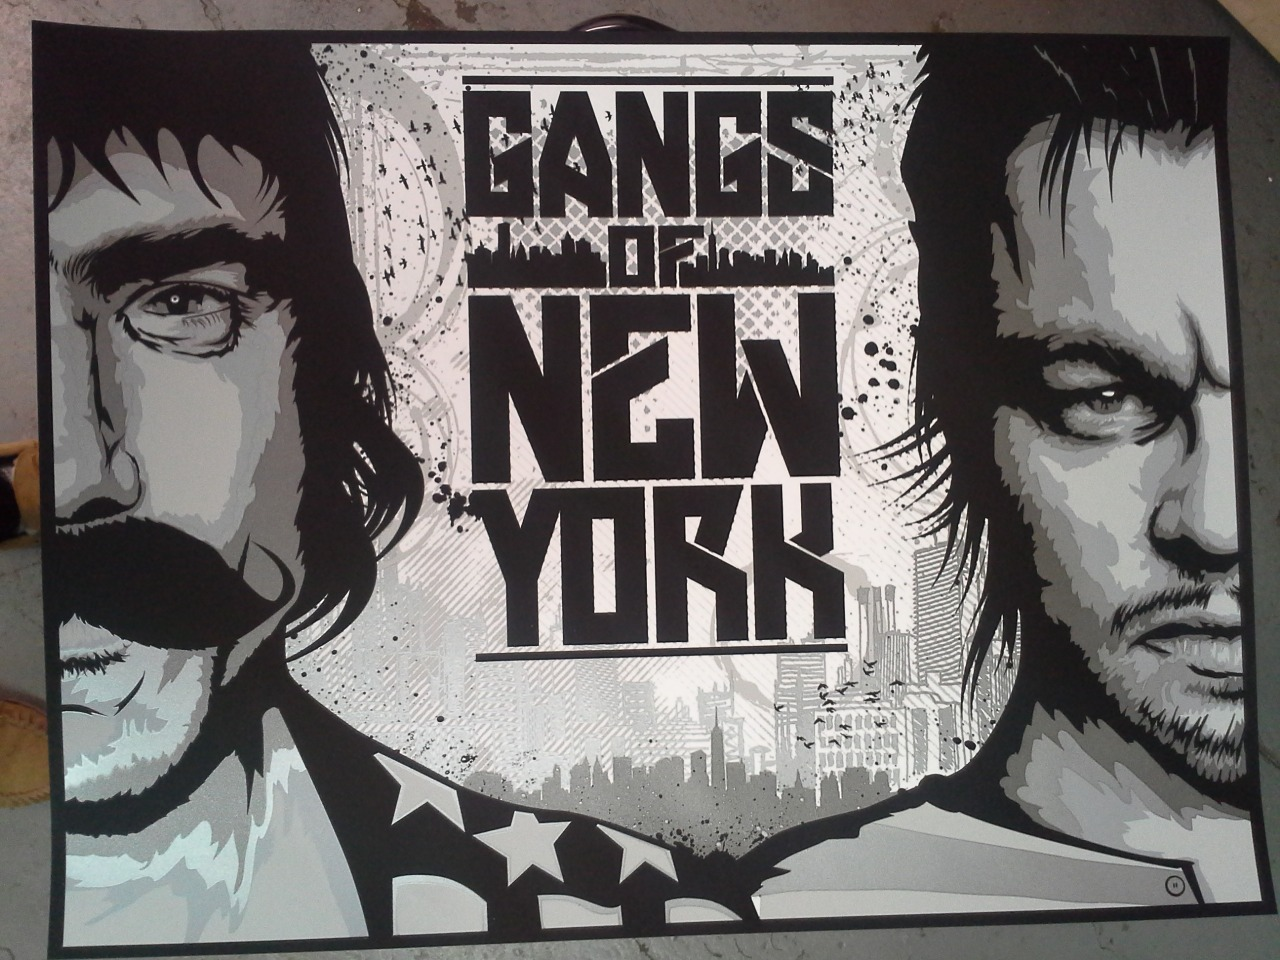 """GANGS OF NEW YORK"" BY DAVID VASQUEZ (TOOBS) FOR SPOKE ART'S SCORSESE SHOW AT BOLD HYPE 5 COLORS WITH 3 METALLICS 24"" X 18"" COUGAR 100LB. COVER IN WHITE"